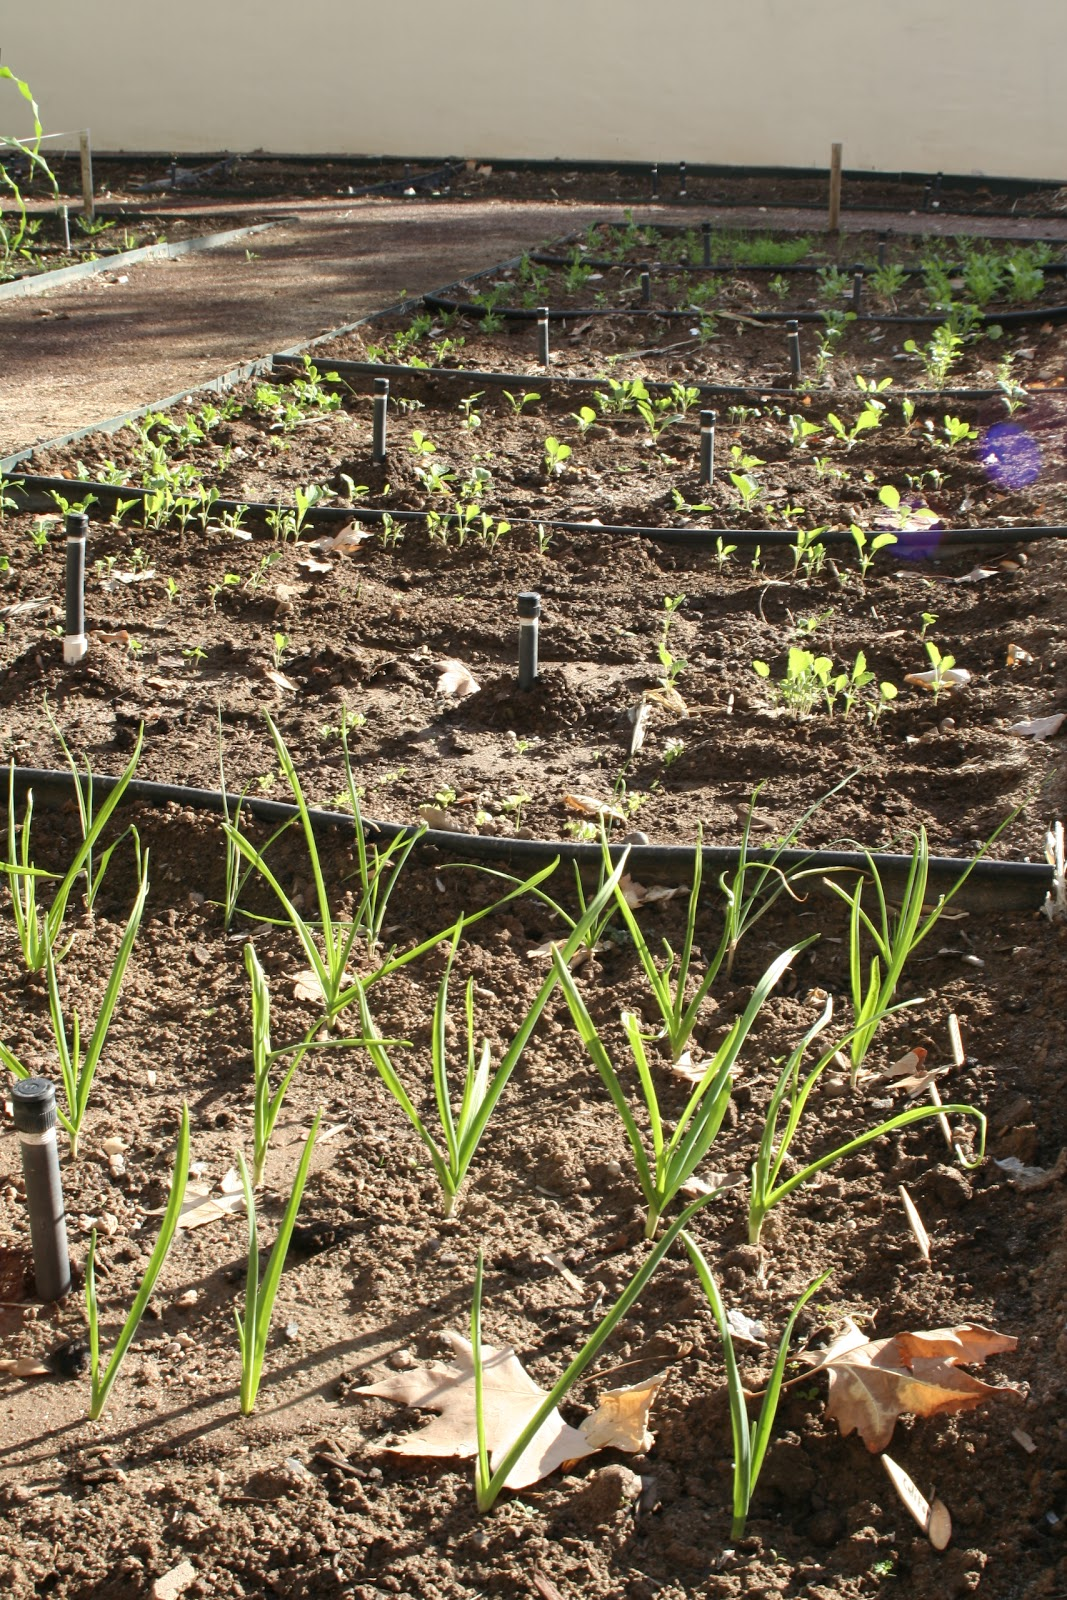 Practical Biology: science for everyone: January garden economics update